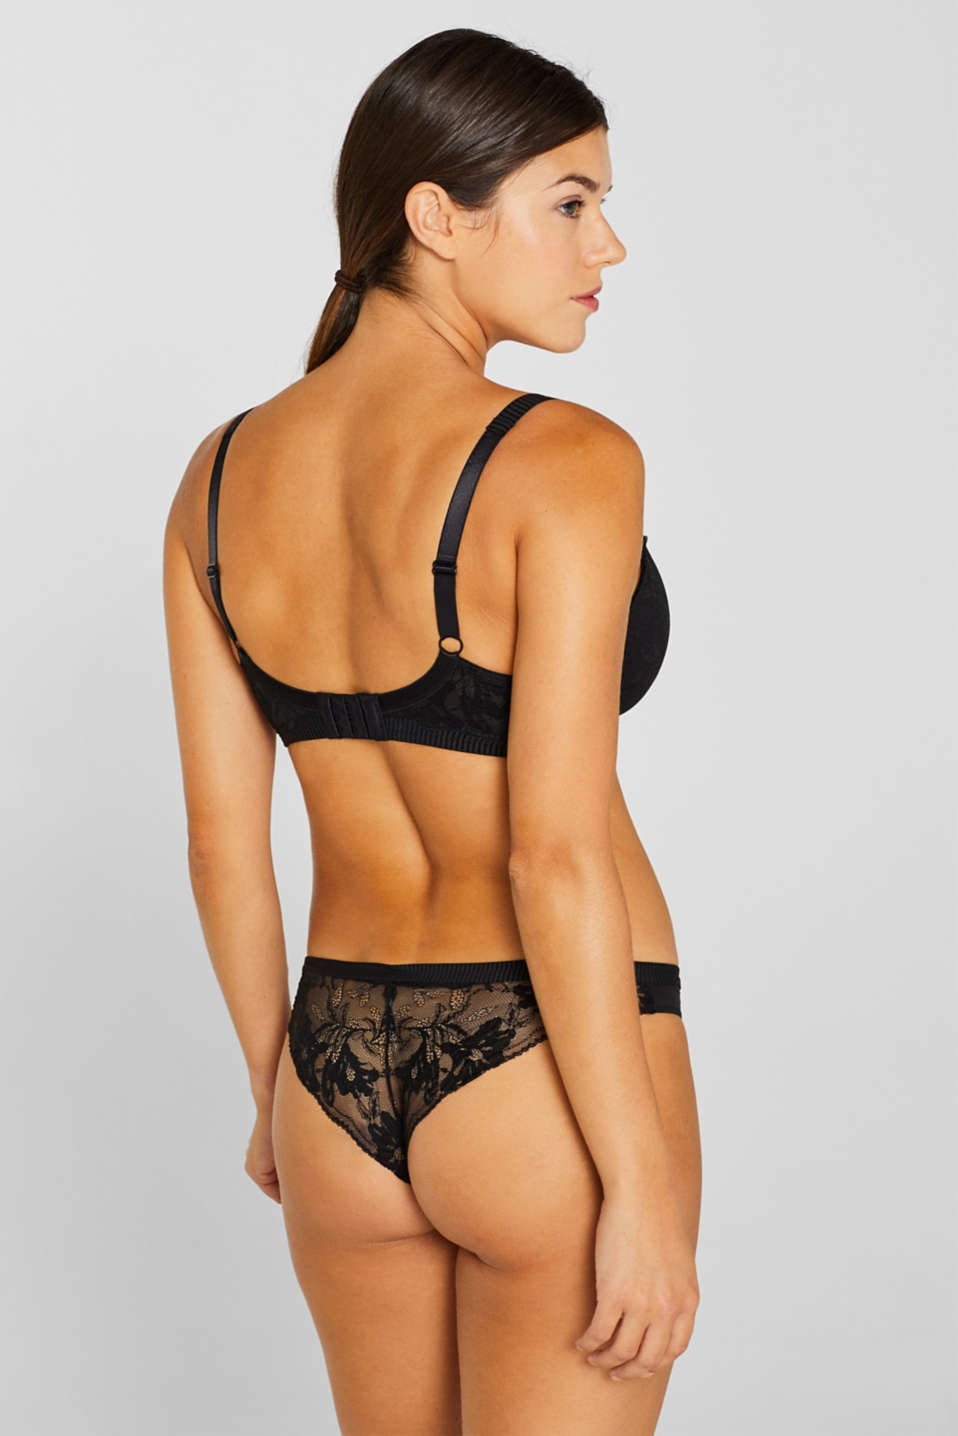 Padded lace bra for larger cup sizes, BLACK, detail image number 1